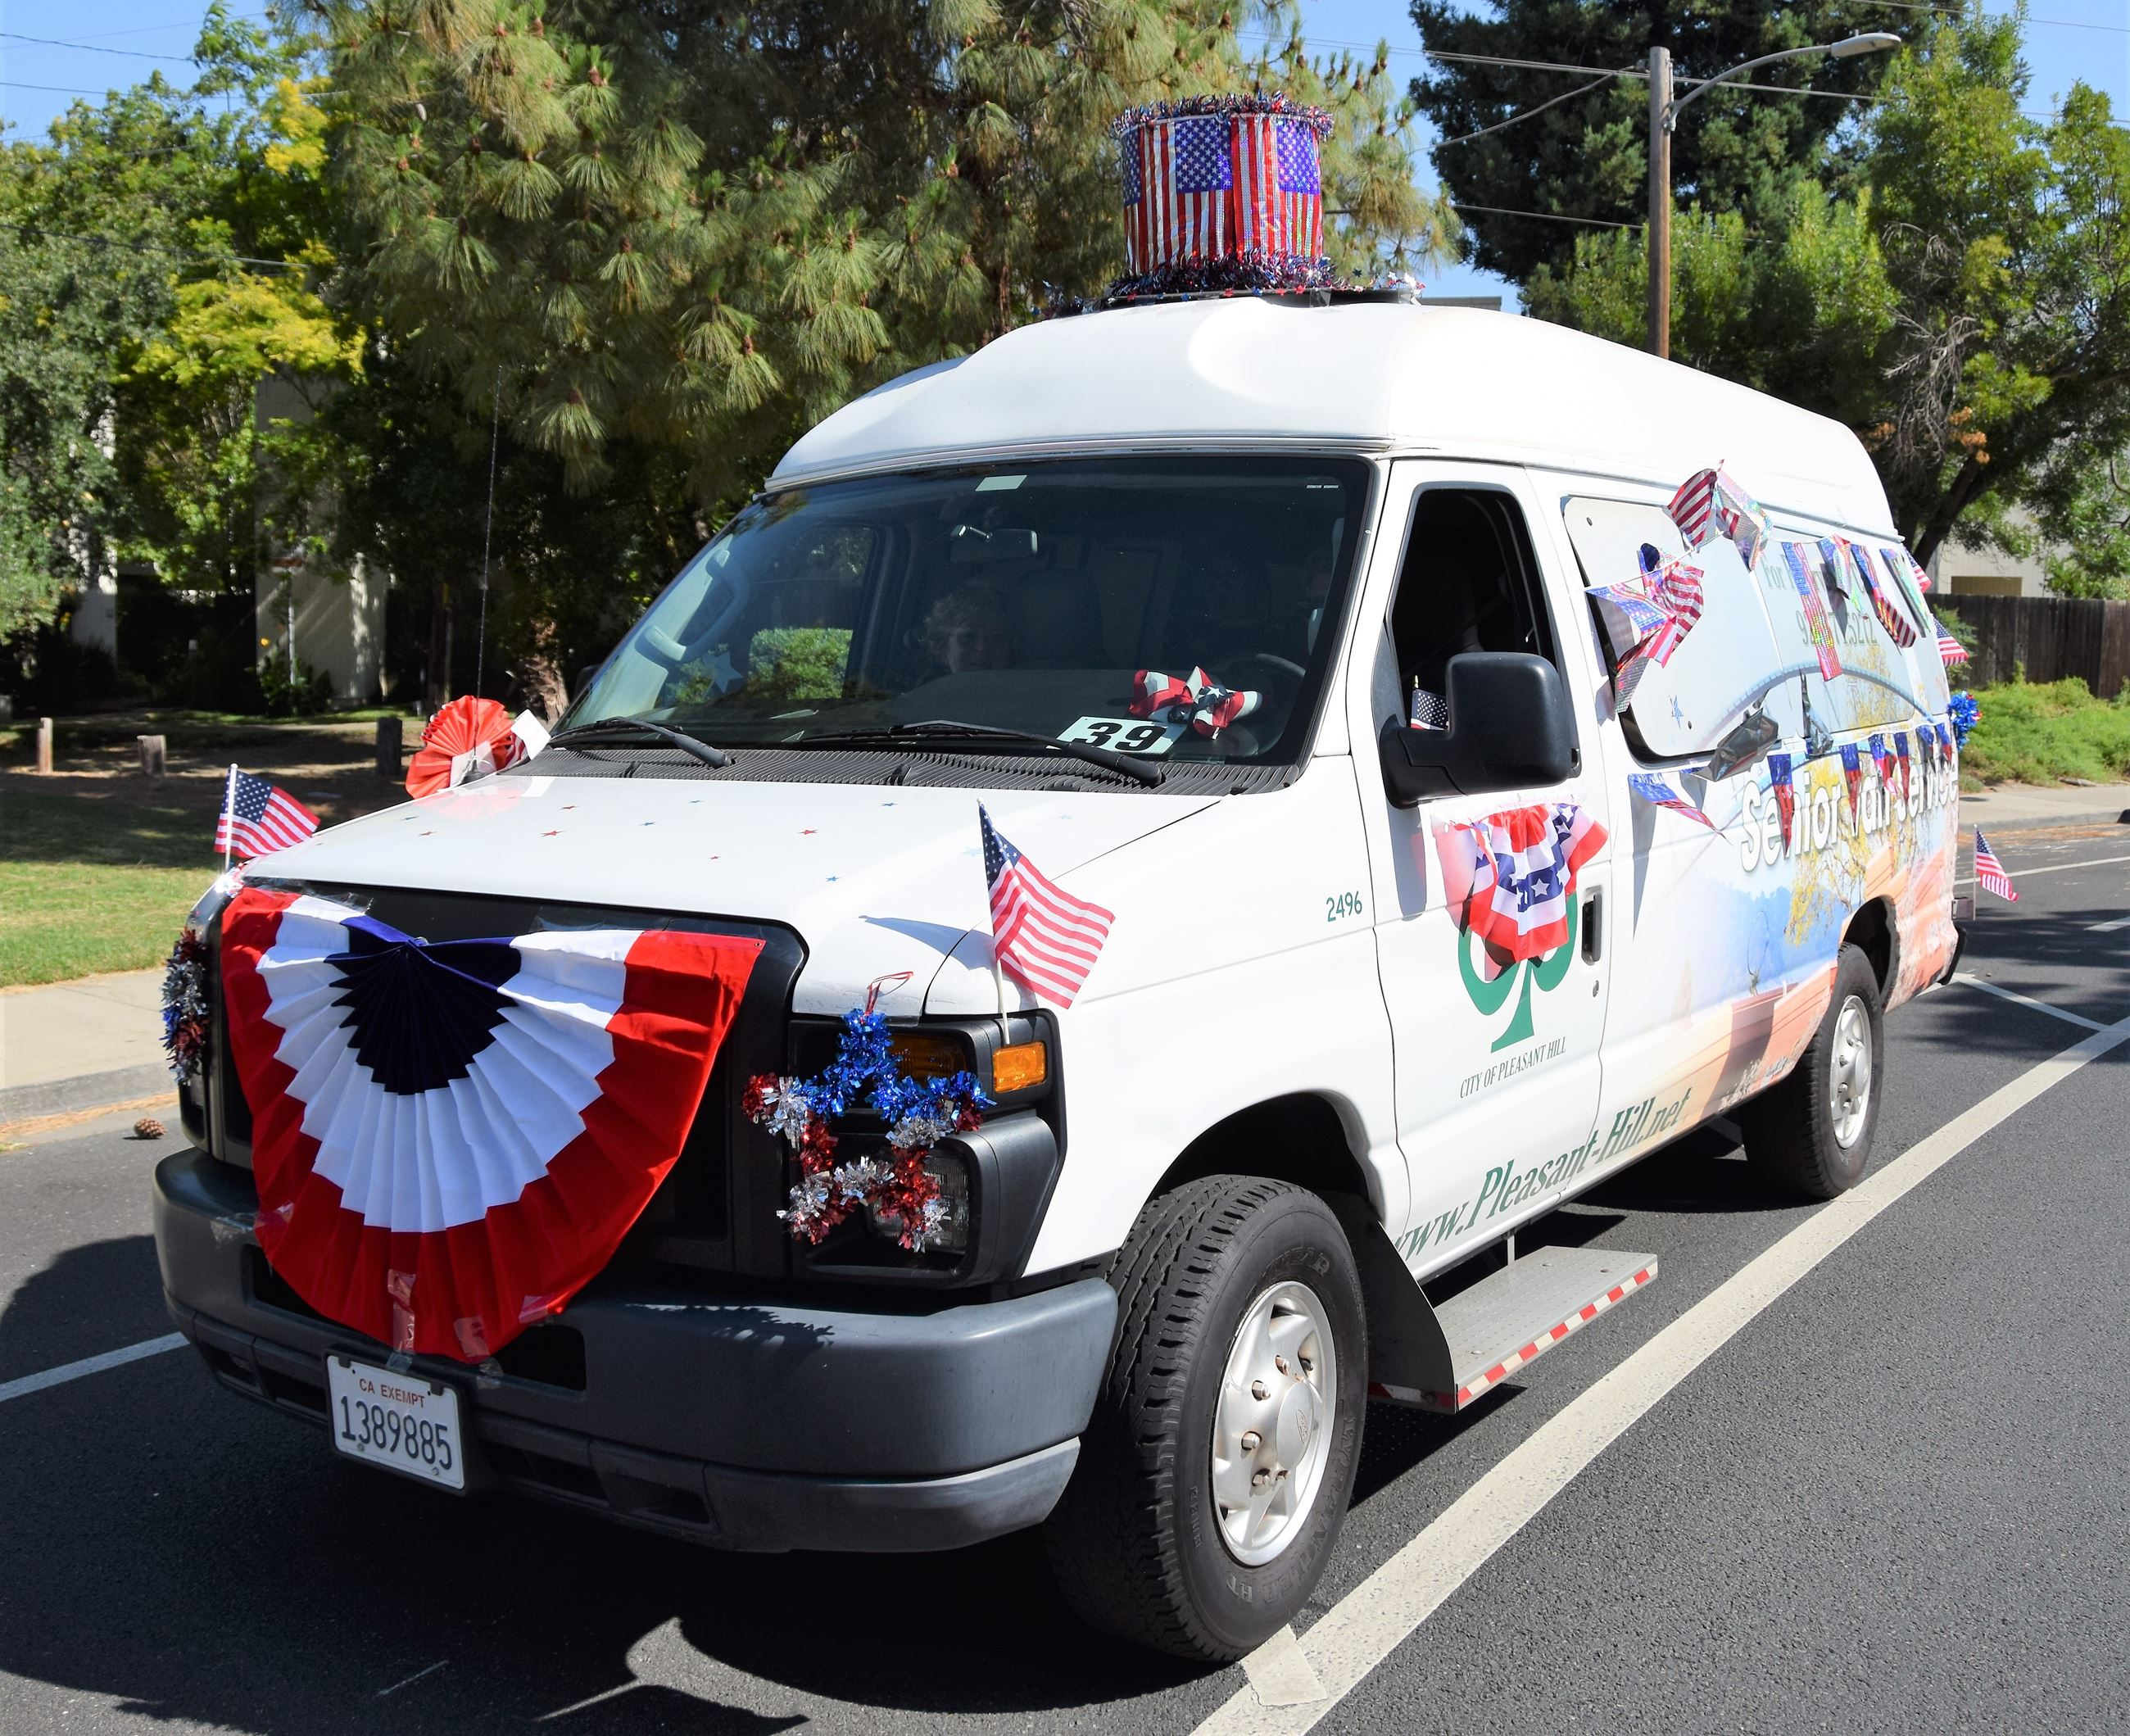 Senior Van decorated for the Fourth of July